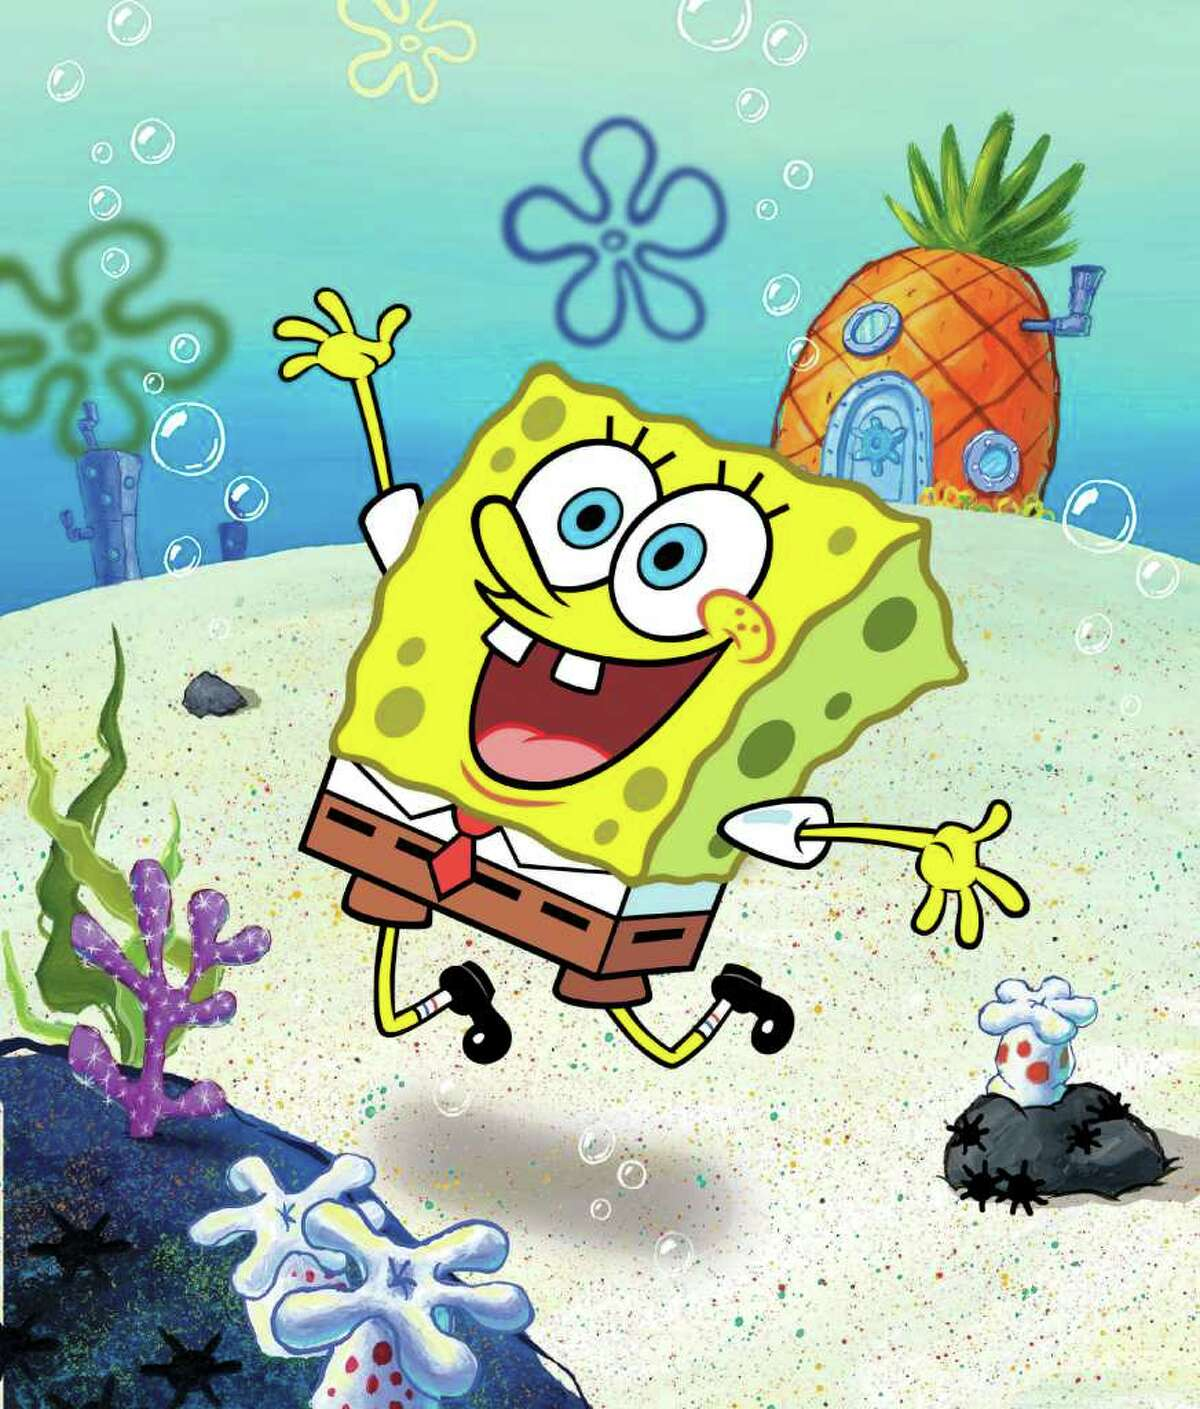 """The """"classic"""" SpongeBob SquarePants began his animated Seinfeld/Alice world way back in 1999. That was 21 years ago, so this show may bring a lot of parents back to their """"younger"""" days. But even with that said, the storyline of a fast-food cook working long hours for a stingy boss surrounded by angry co-workers doesn't sound that much like a children's program right? Maybe more of a 1980's sitcom. On a side note, if the show """"Alice"""" is too obscure a reference, check it out too. See how SpongeBob got started here: https://www.youtube.com/watch?v=npoO_YPrb2U"""